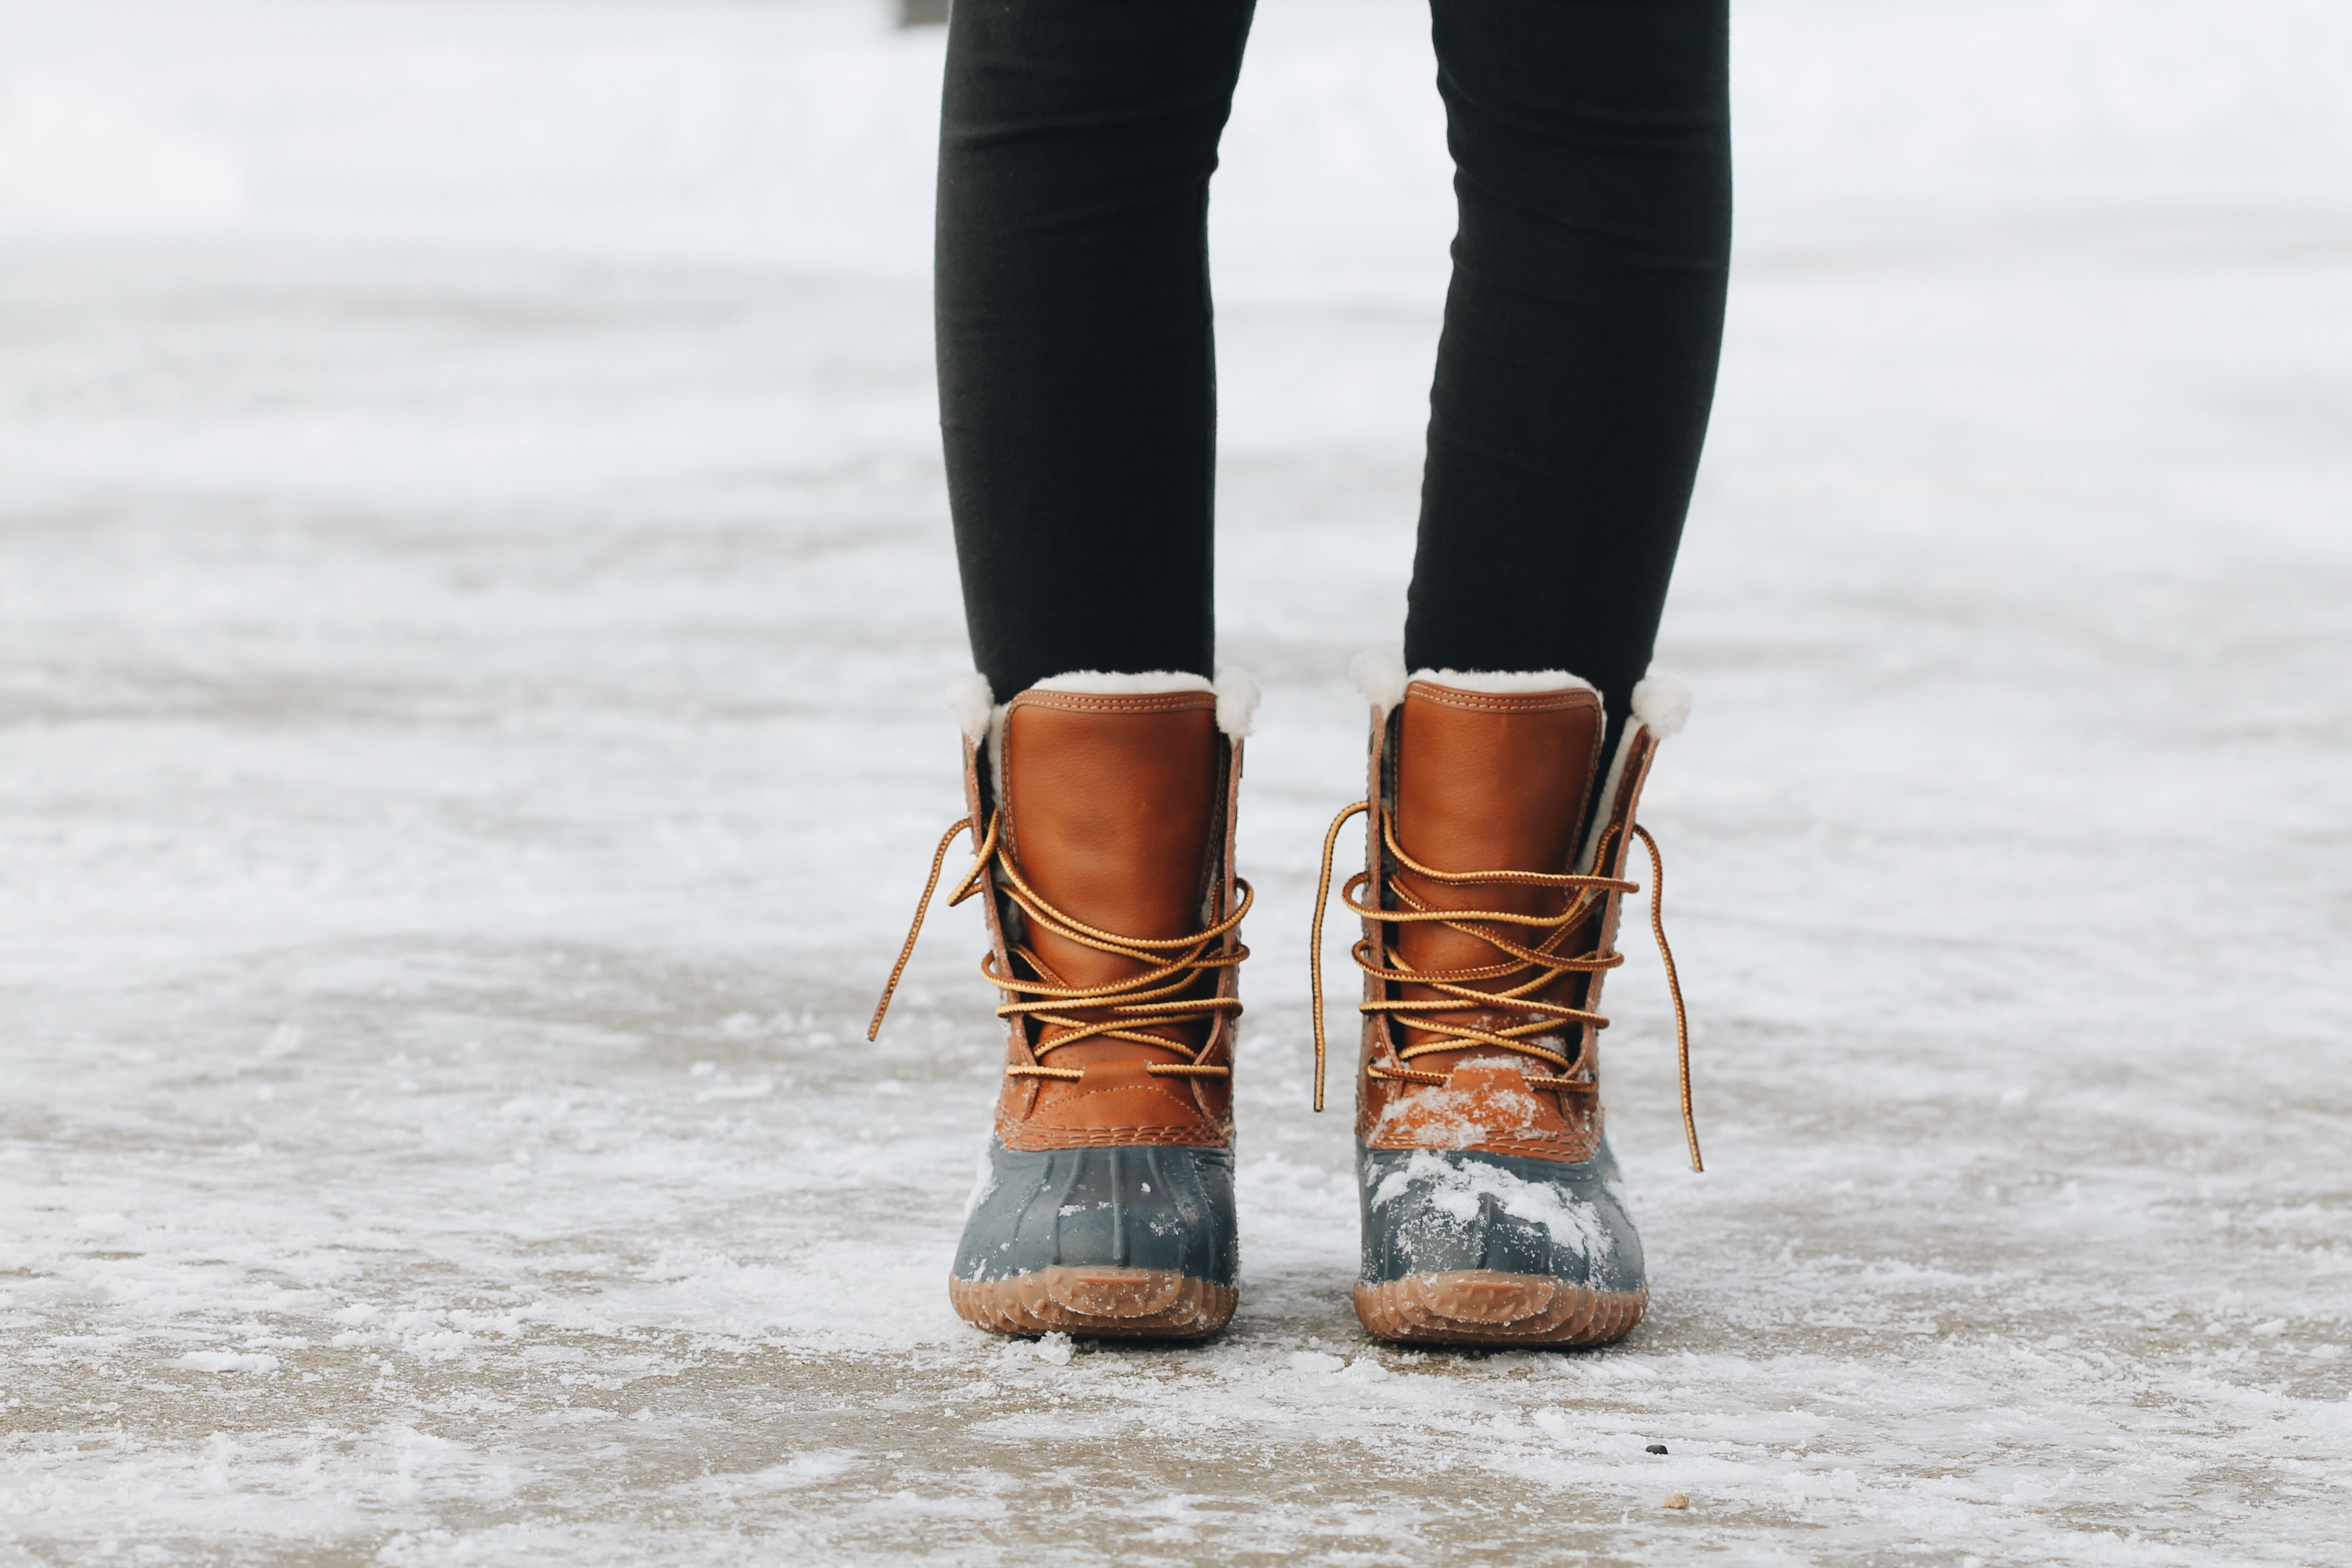 A close up shot of a woman wearing brown boots in Spirit Lake